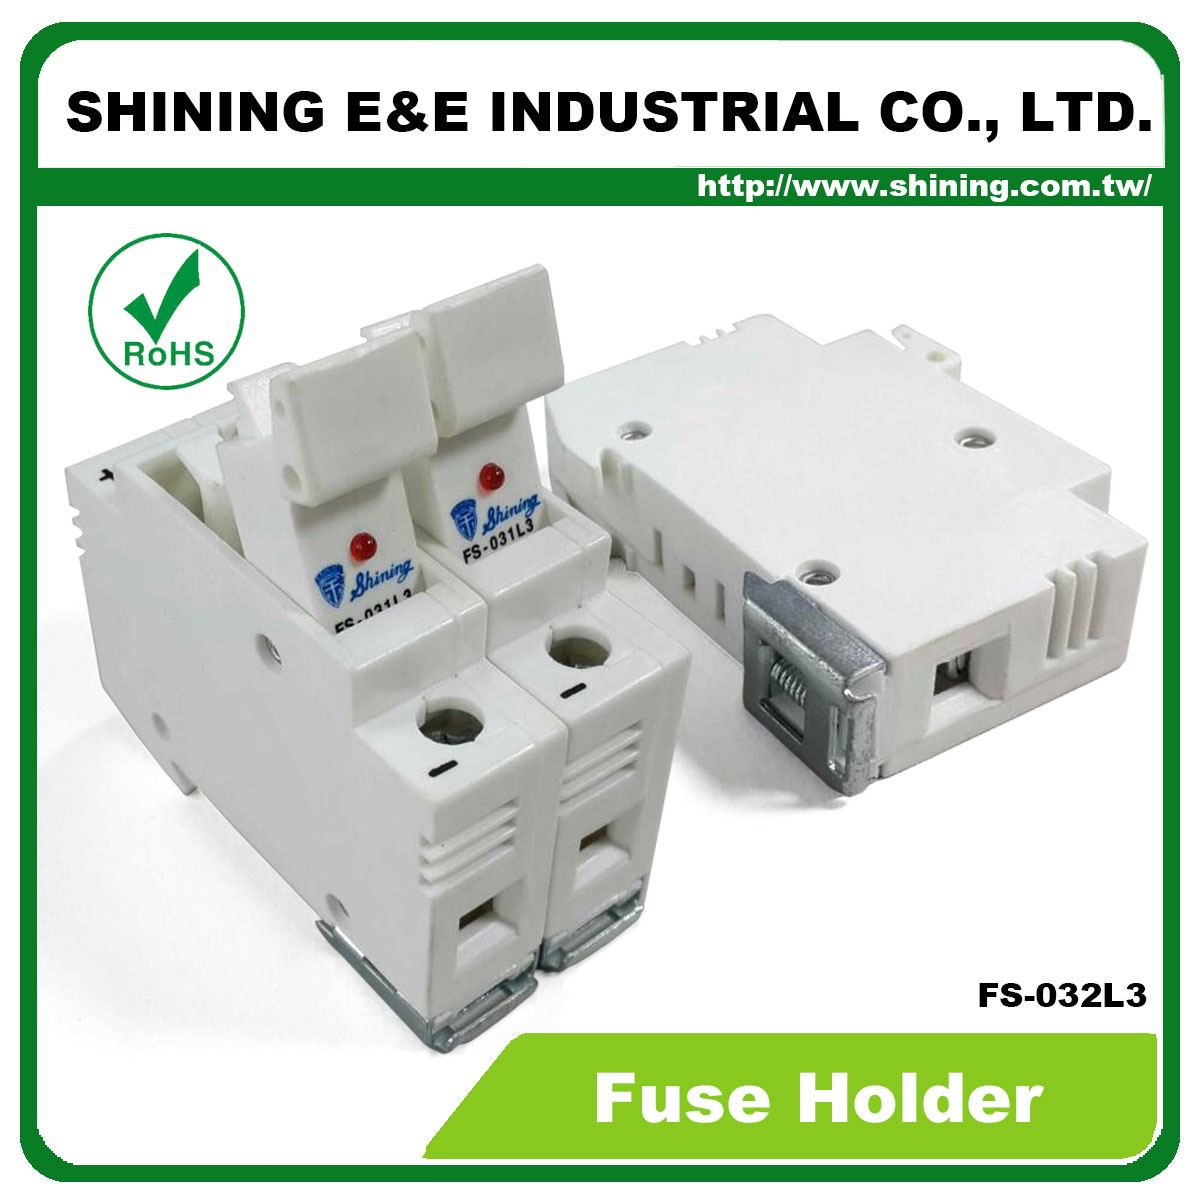 2 Pole Din Rail Fuse Box 24 Wiring Diagram Images Industrial Fs 032l3 600v 32a Way Mounted Cylindrical Holder V6 Taiwan